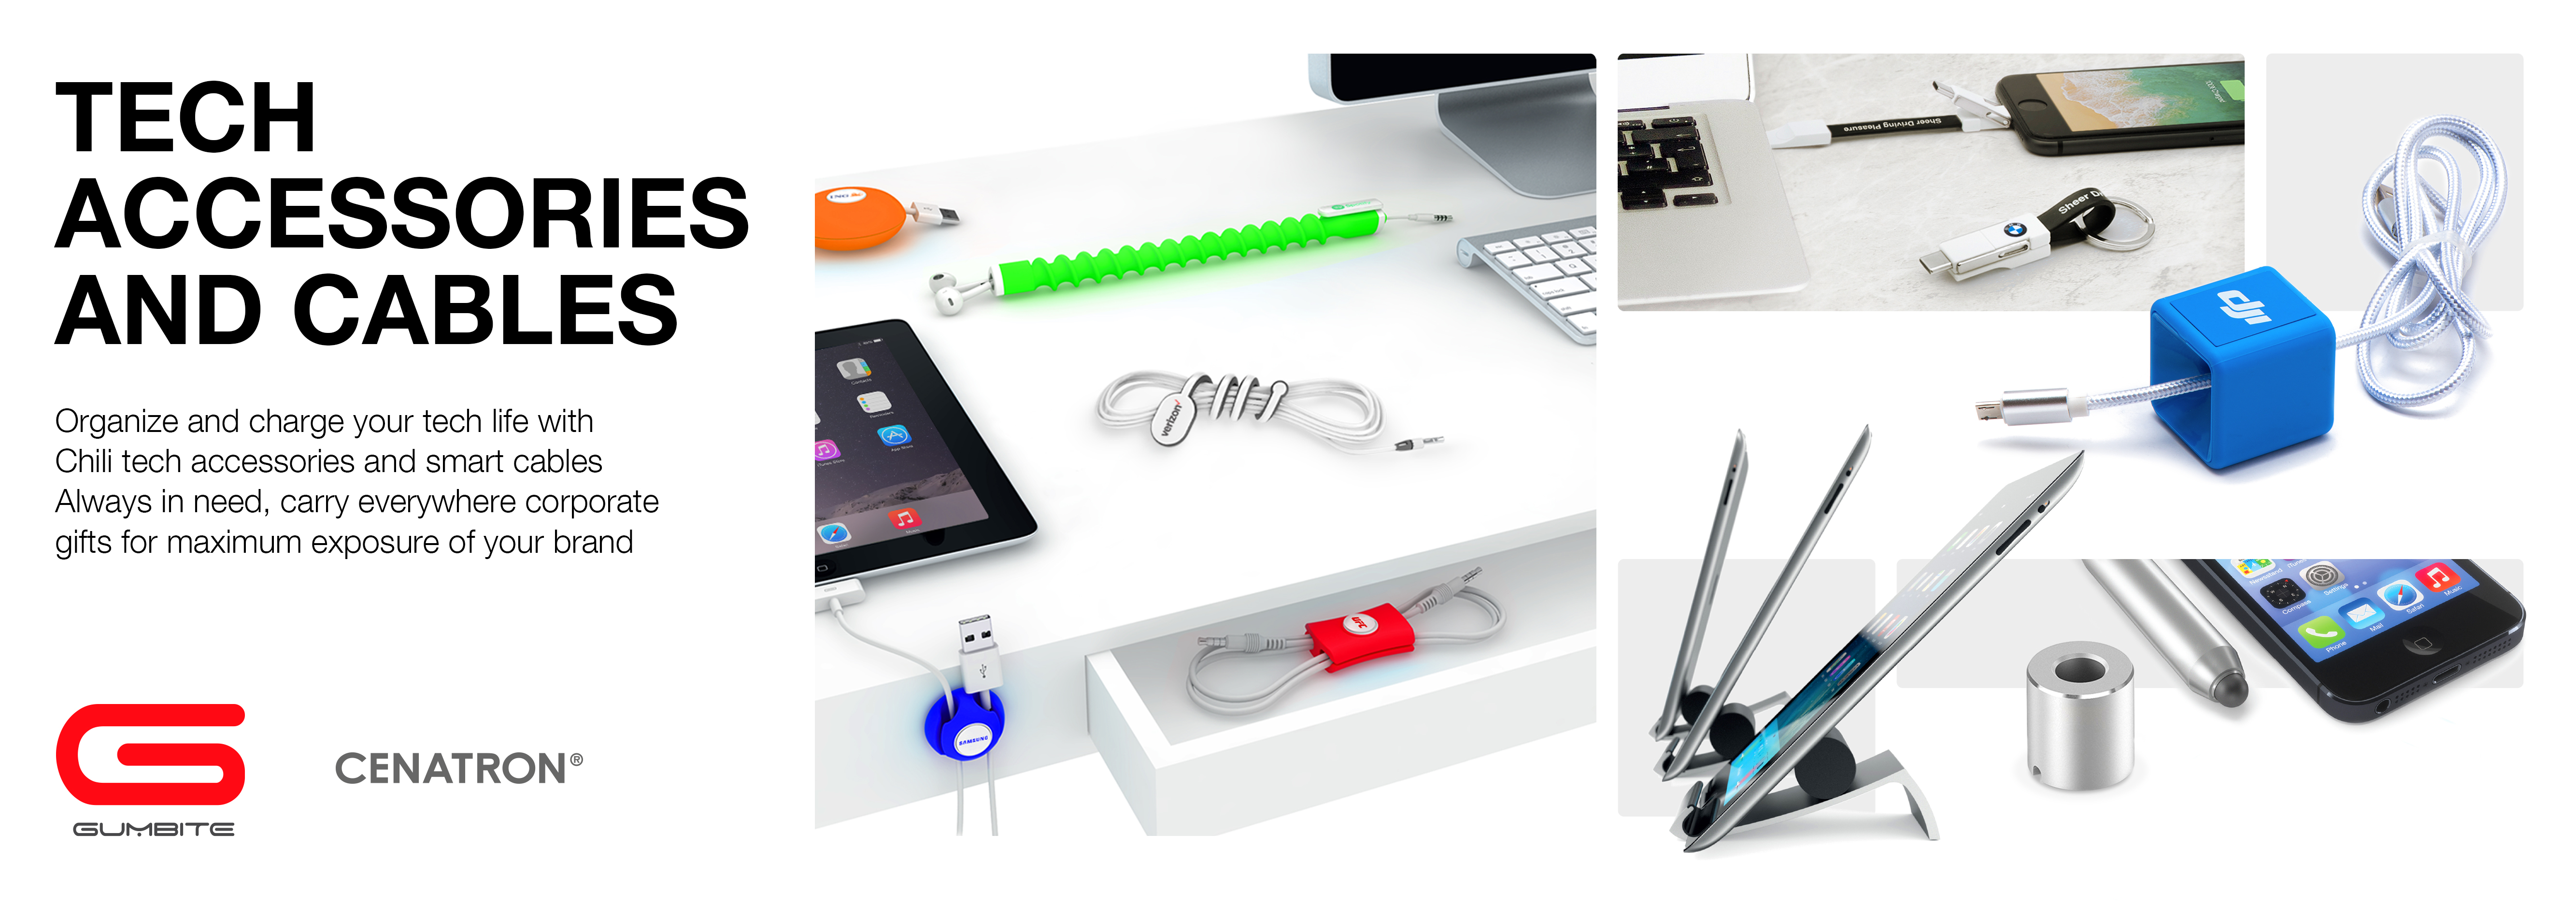 TECH ACCESSORIES & CABLES